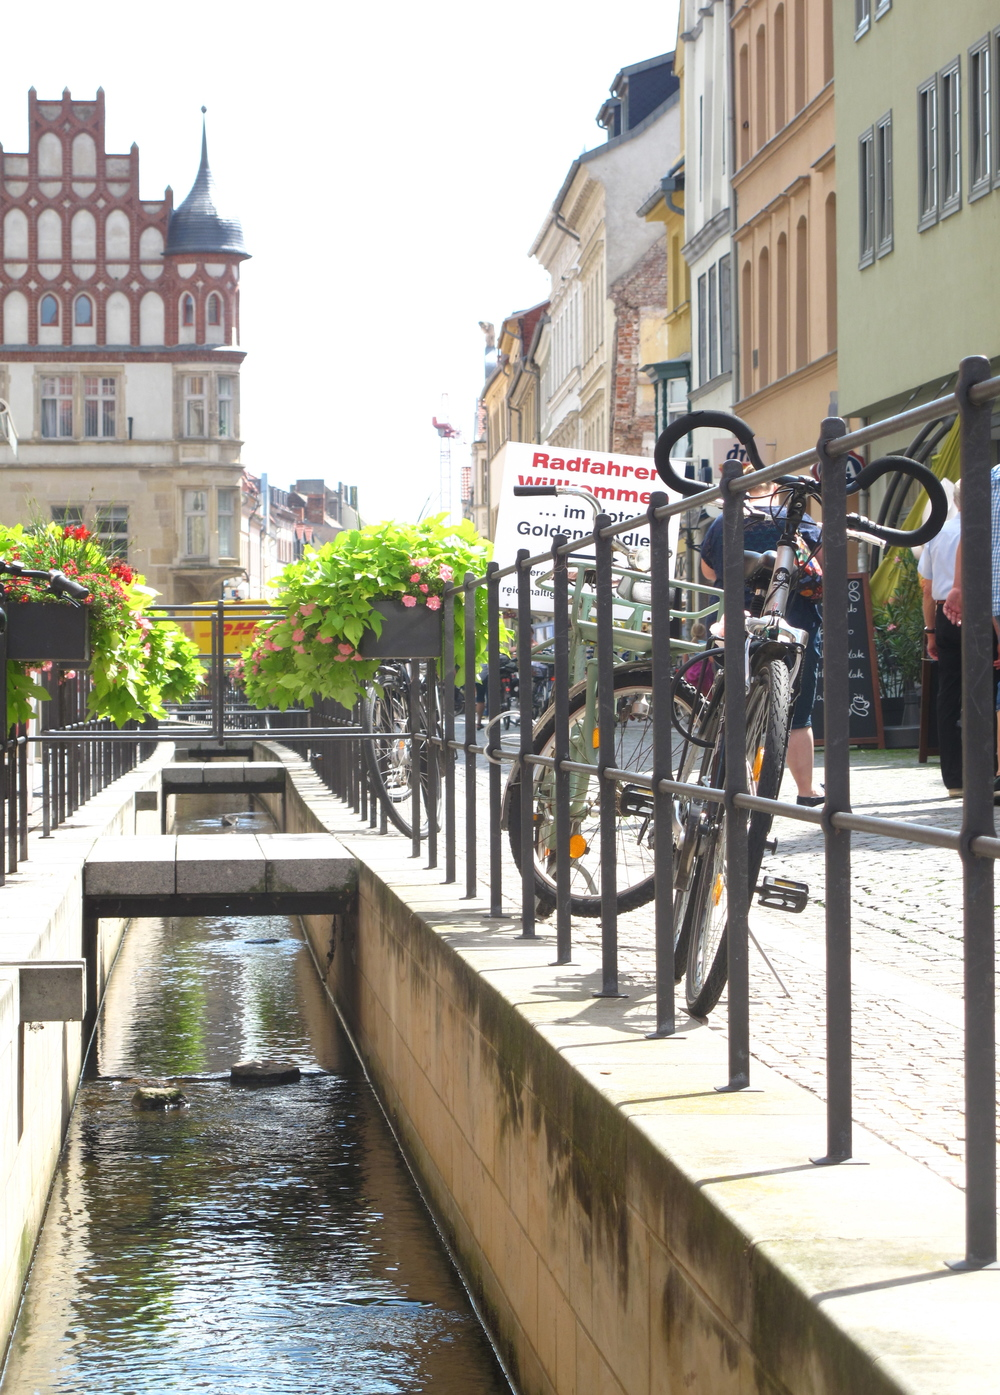 Canals through the old town of Wittenberg, with bicycles and flower baskets.